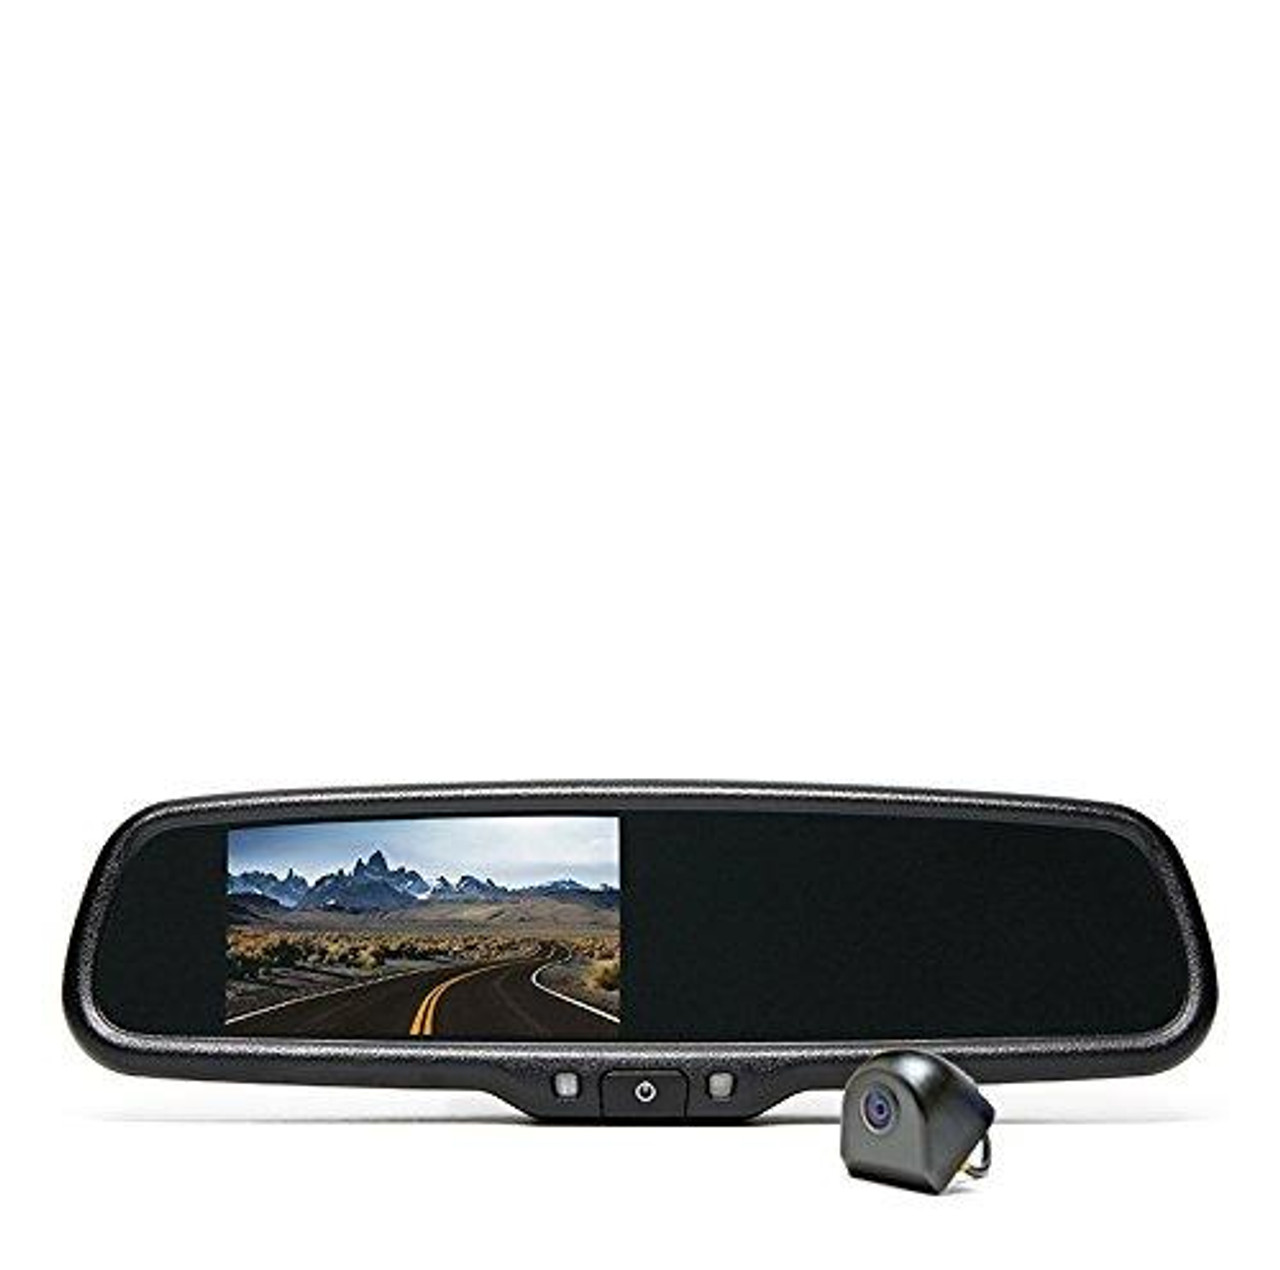 Backup Camera System for Pickup Trucks, 33' Cable